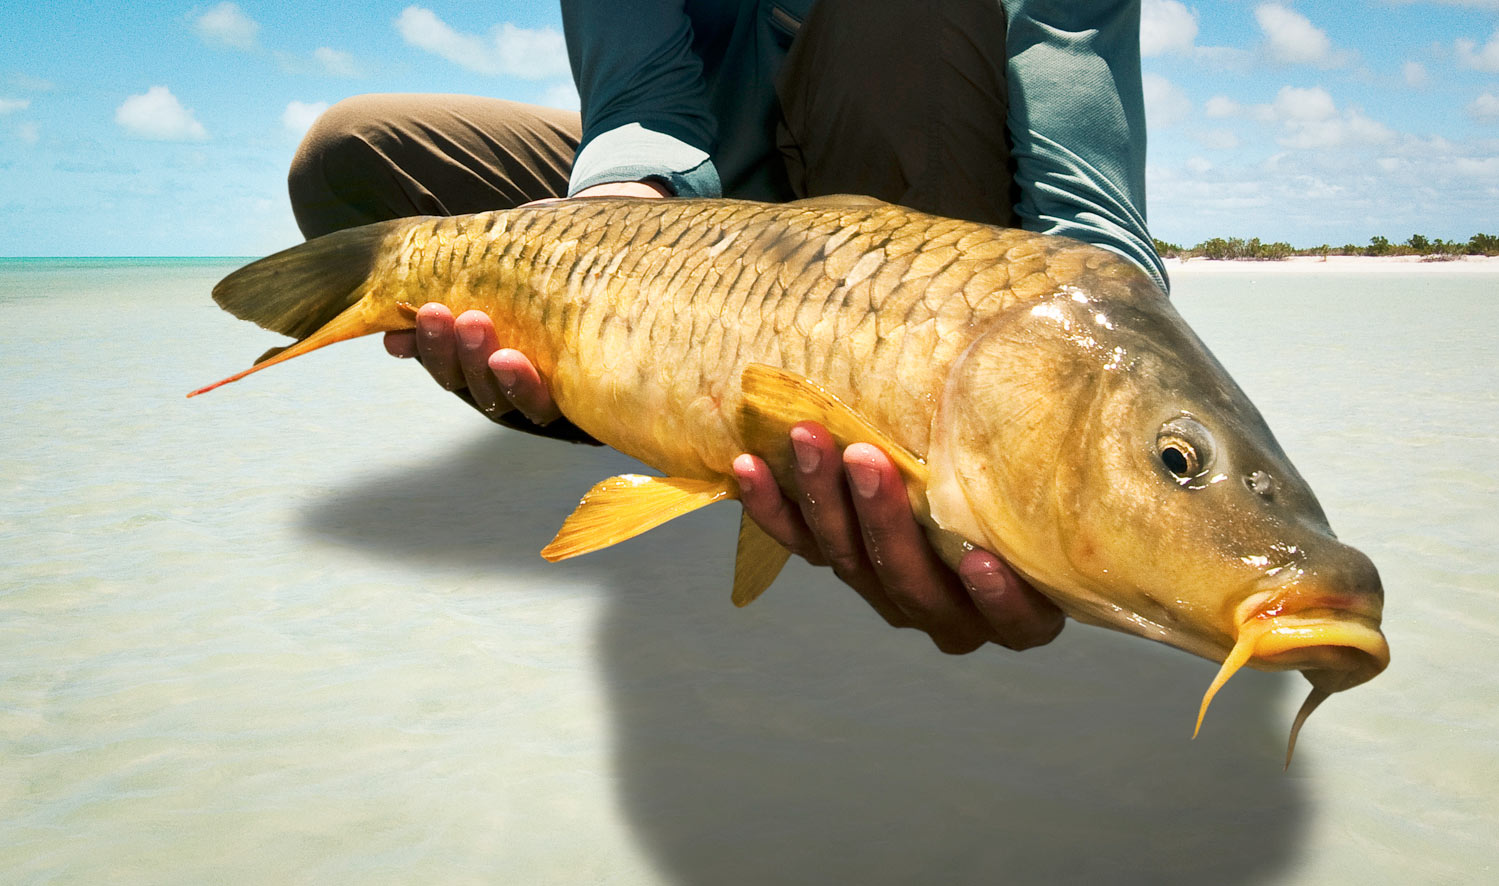 Carp on the flats Photo by Louis Cahill